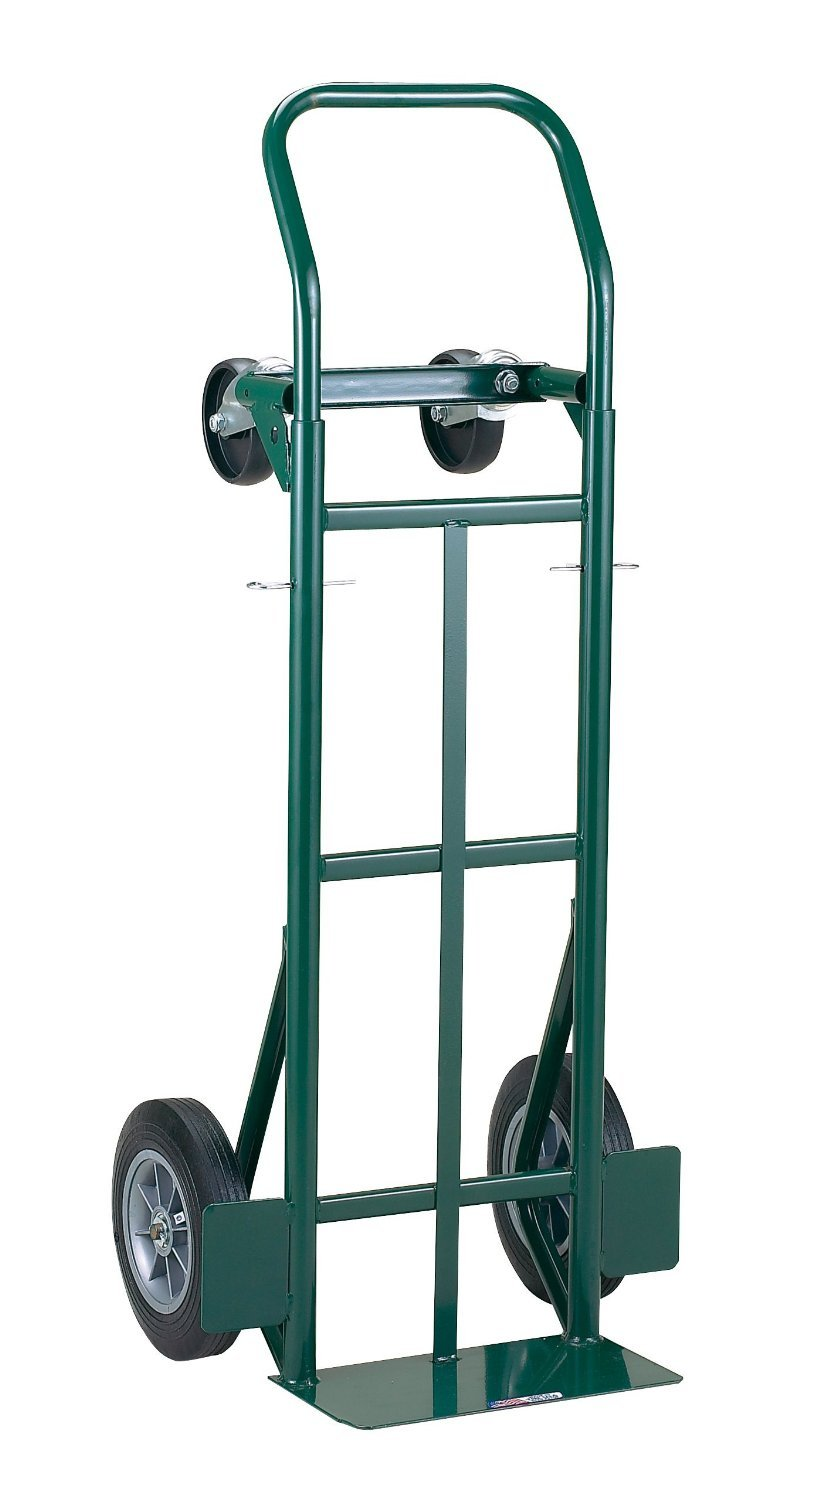 Harper Trucks 700 lb Capacity Super-Steel Convertible Hand Truck, Dual Purpose 2 Wheel Dolly and 4 Wheel Cart with 10'' Flat-Free Solid Rubber Wheels by Harper Trucks